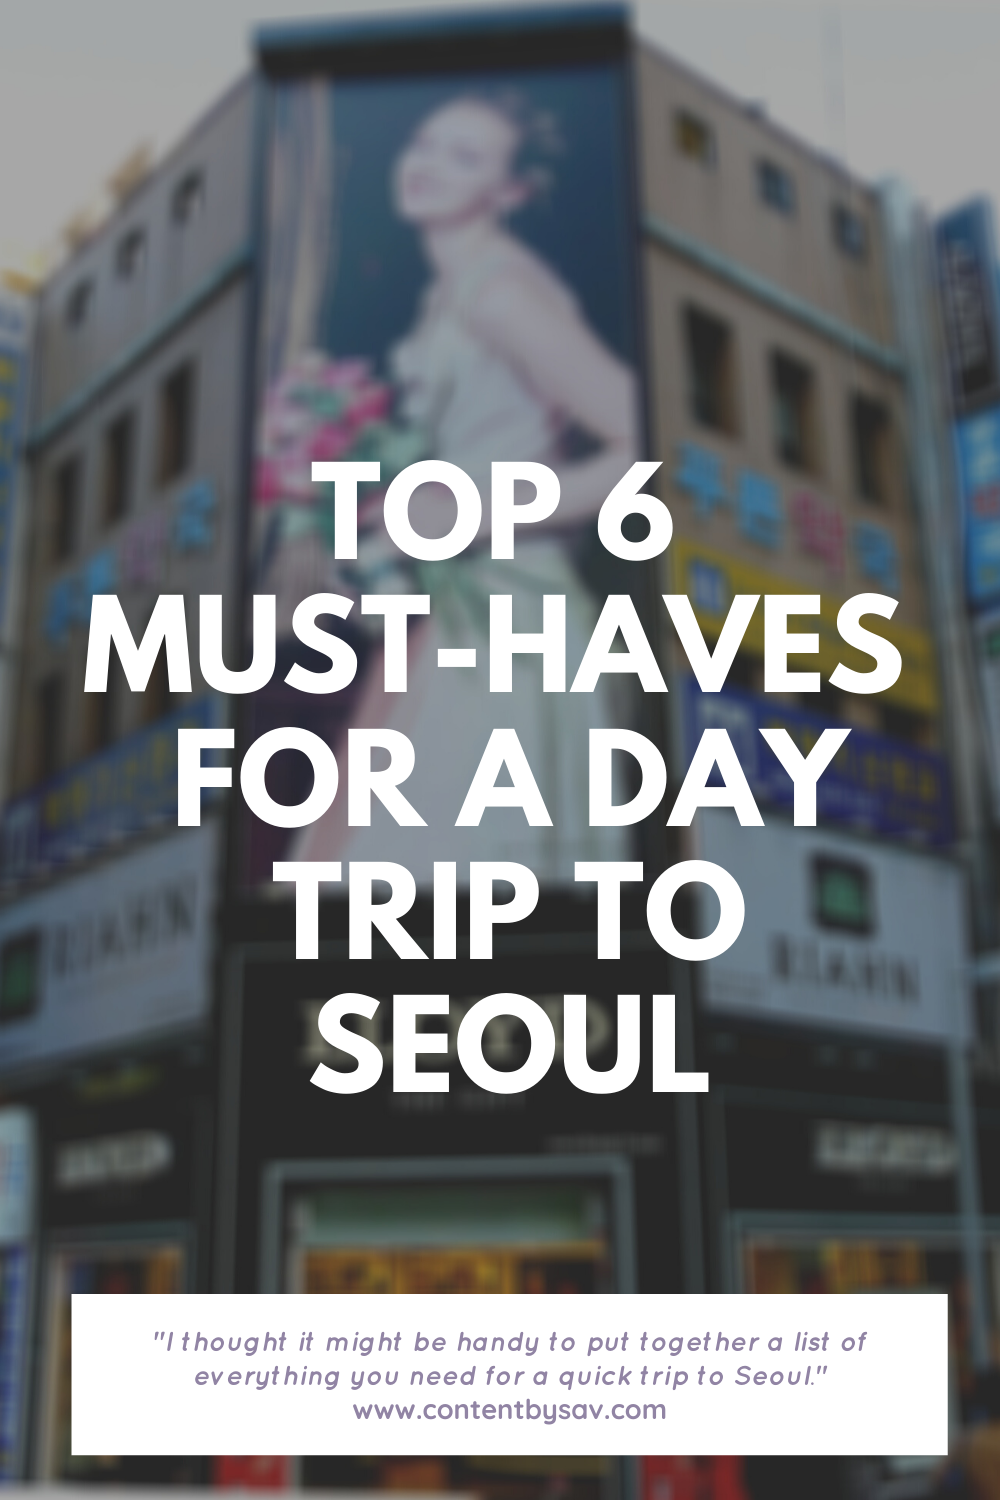 Billboard in Seoul overlaid by Top 6 Must-Haves for a Day Trip to Seoul